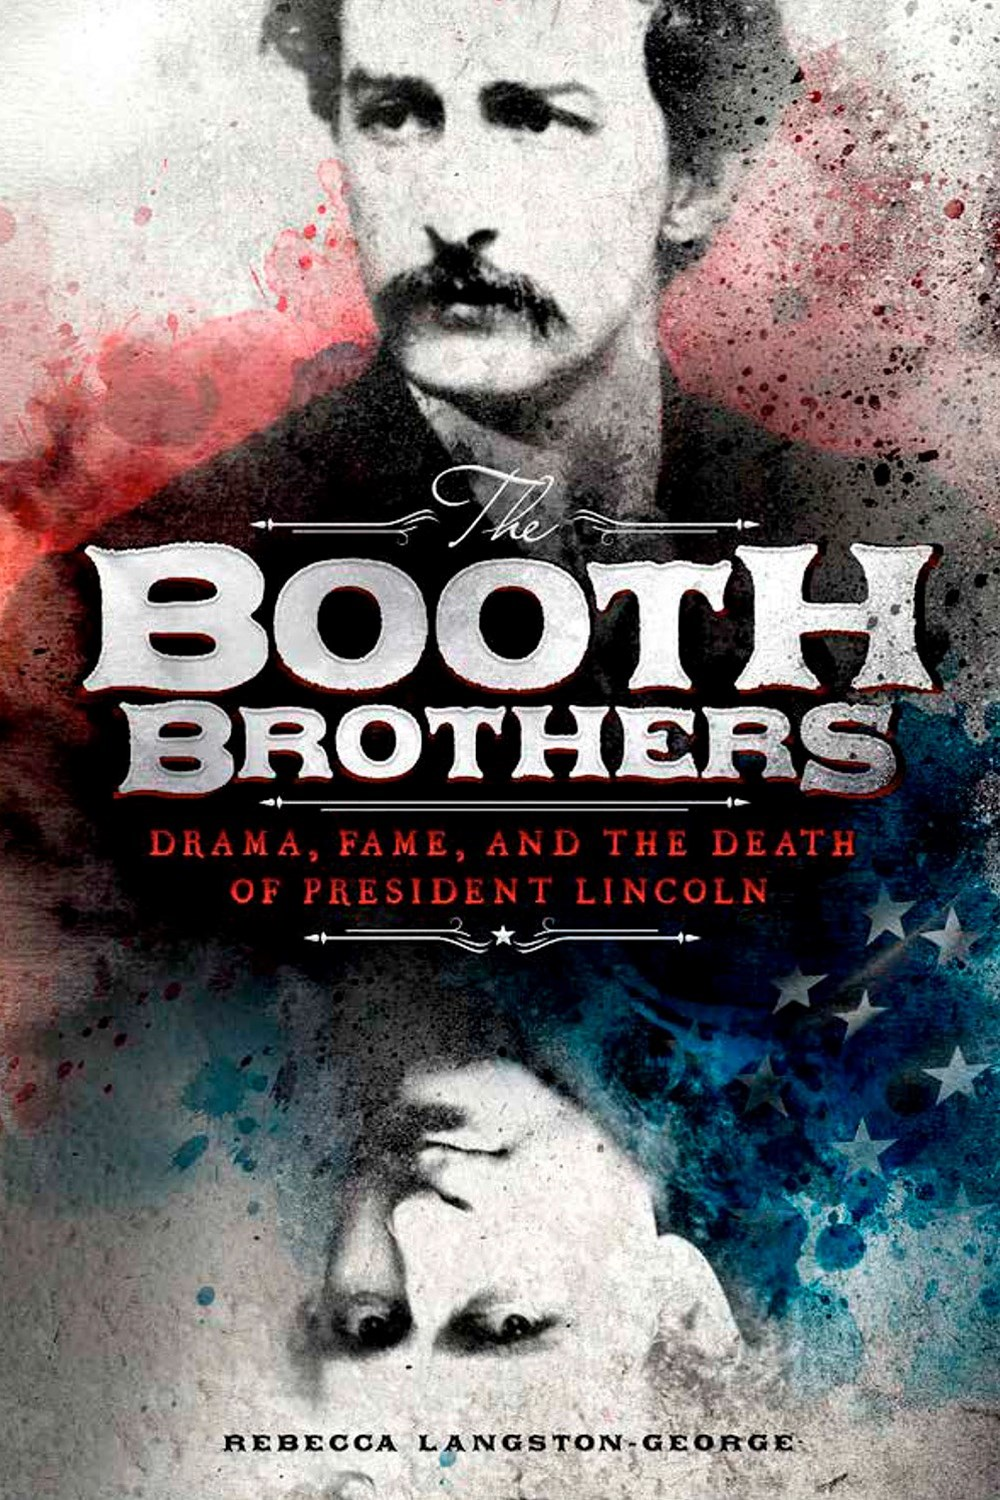 Booth Brothers: Drama, Fame, and the Death of President Lincoln